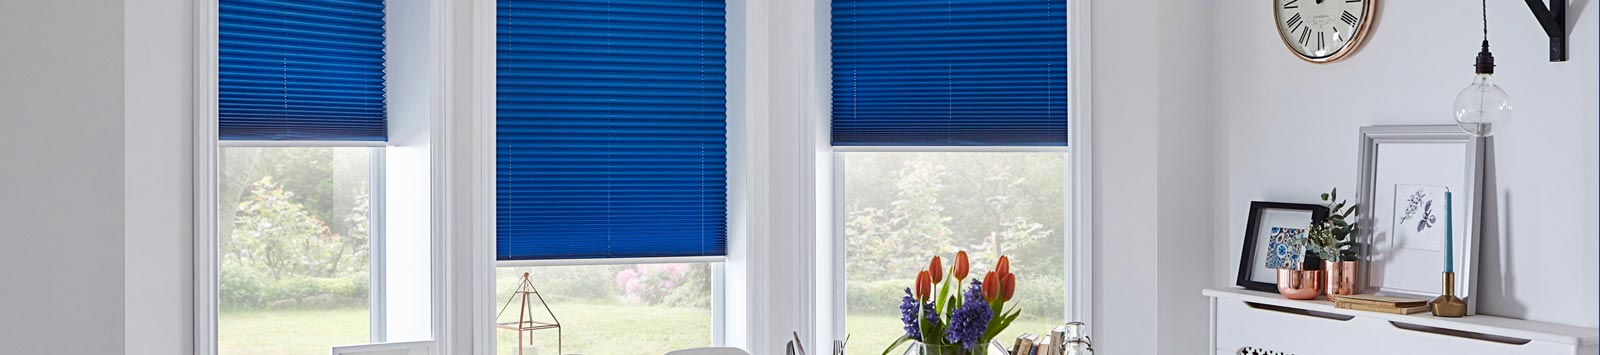 Blue Pleated Blinds